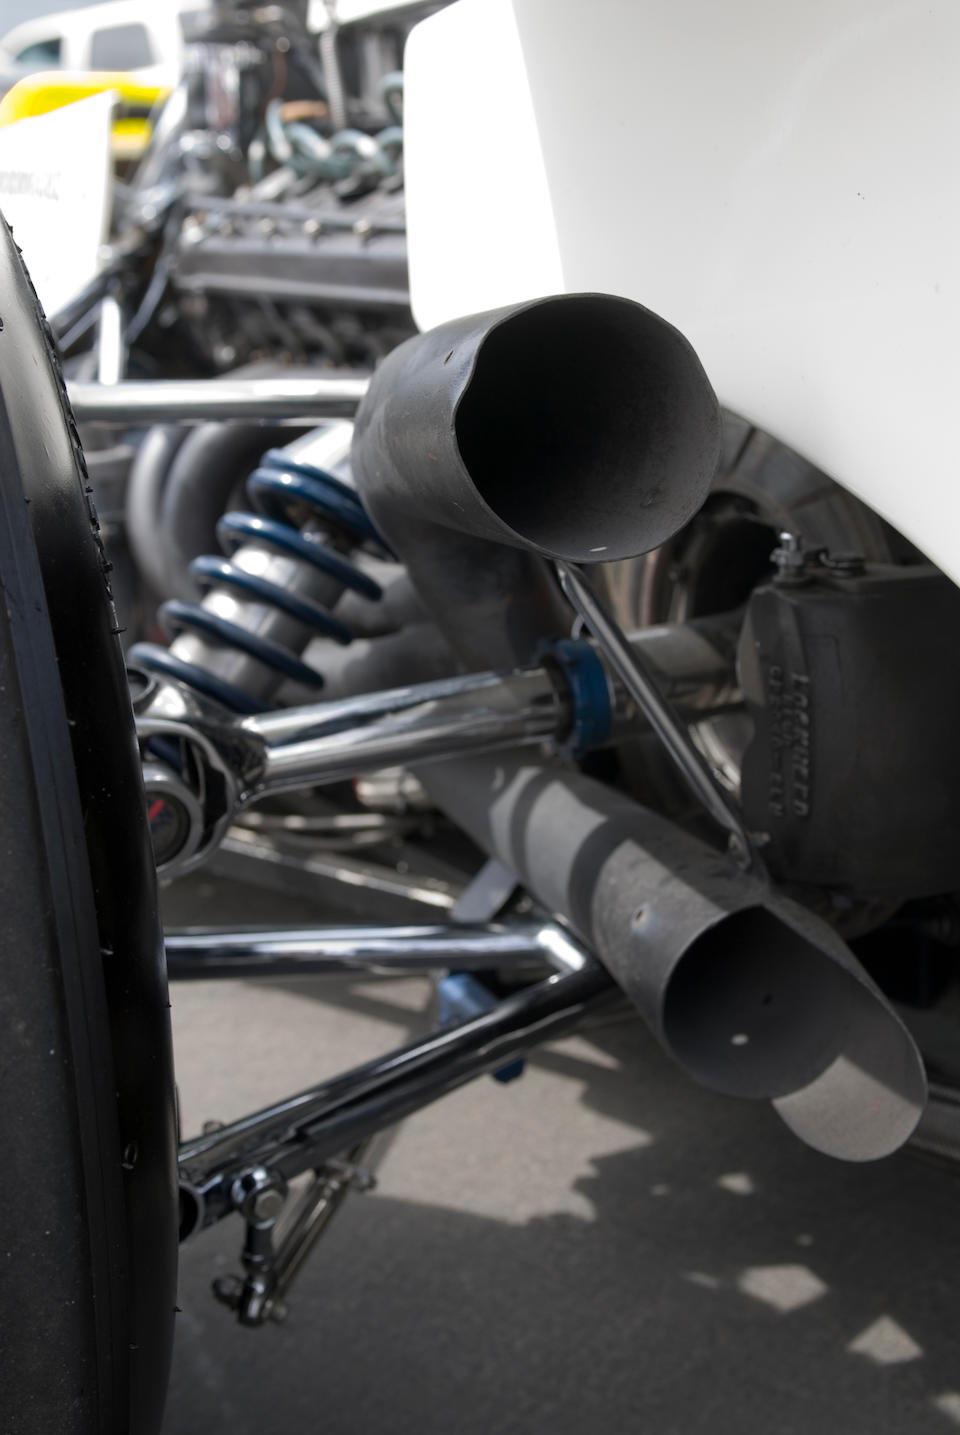 The ex-Clay Regazzoni, Jean-Pierre Beltoise, Peter Gethin,1973-74 3-Liter BRM P160 V12 Formula 1 Racing Single-Seater  Chassis no. P160-09